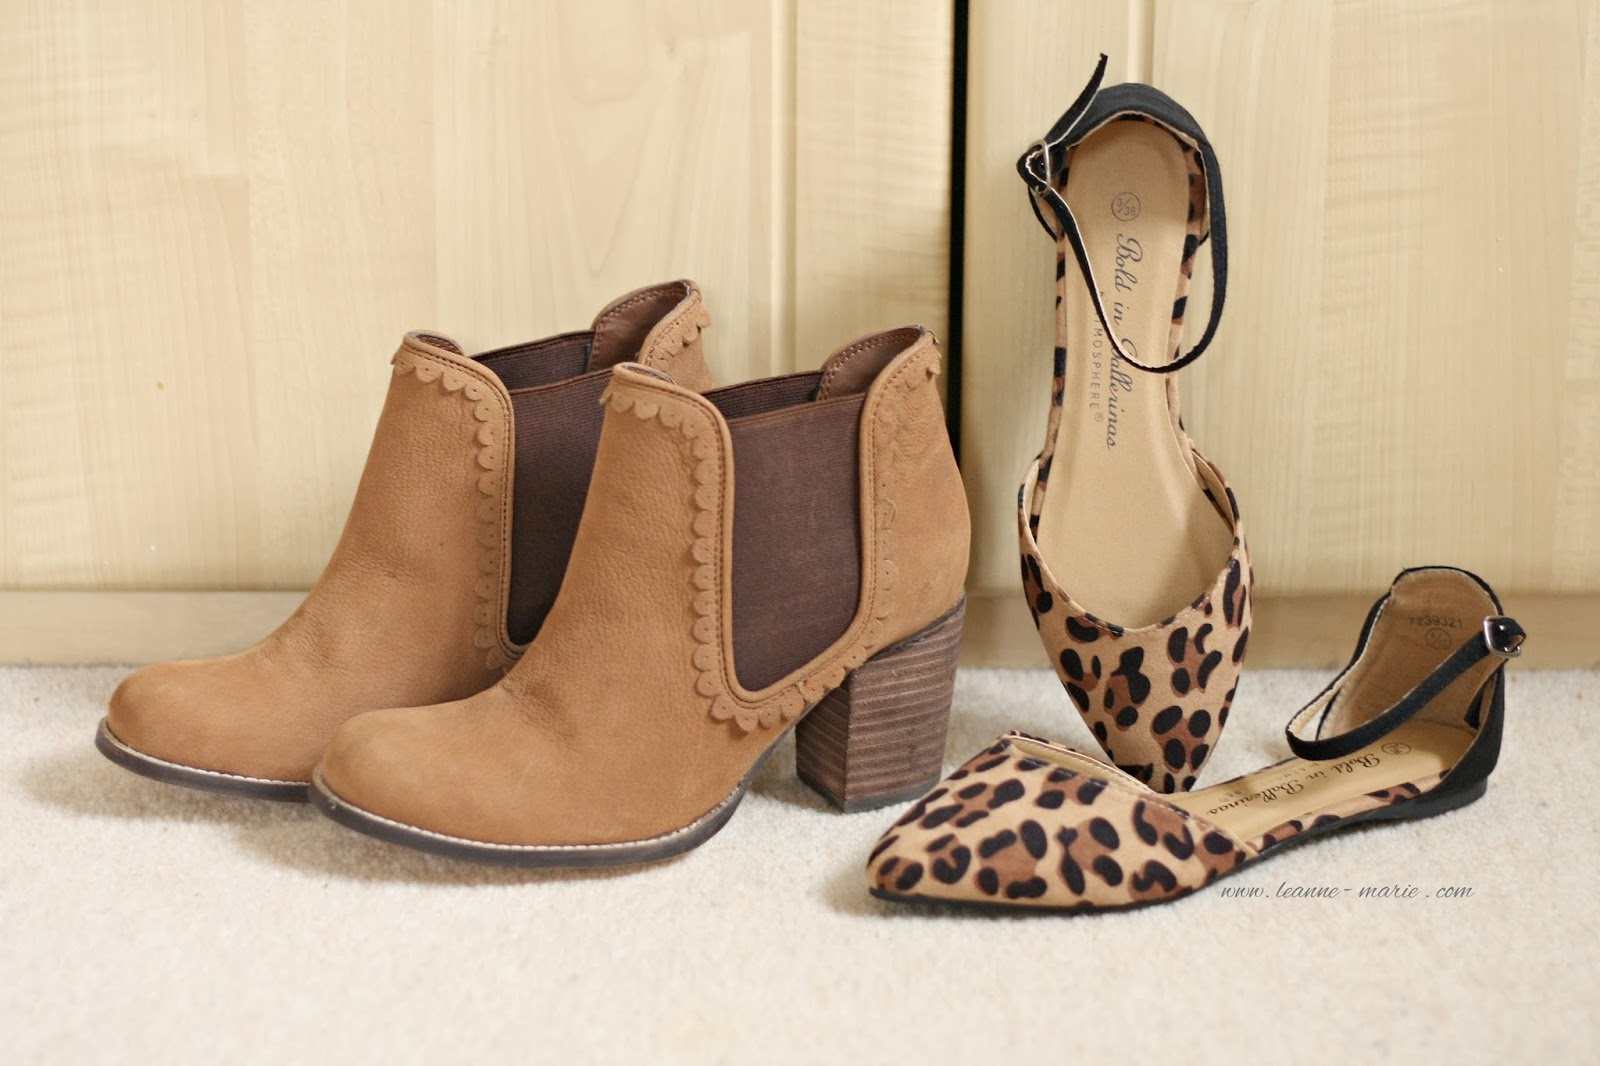 LEOPARD PRINT SHOES AND TAN BOOTS